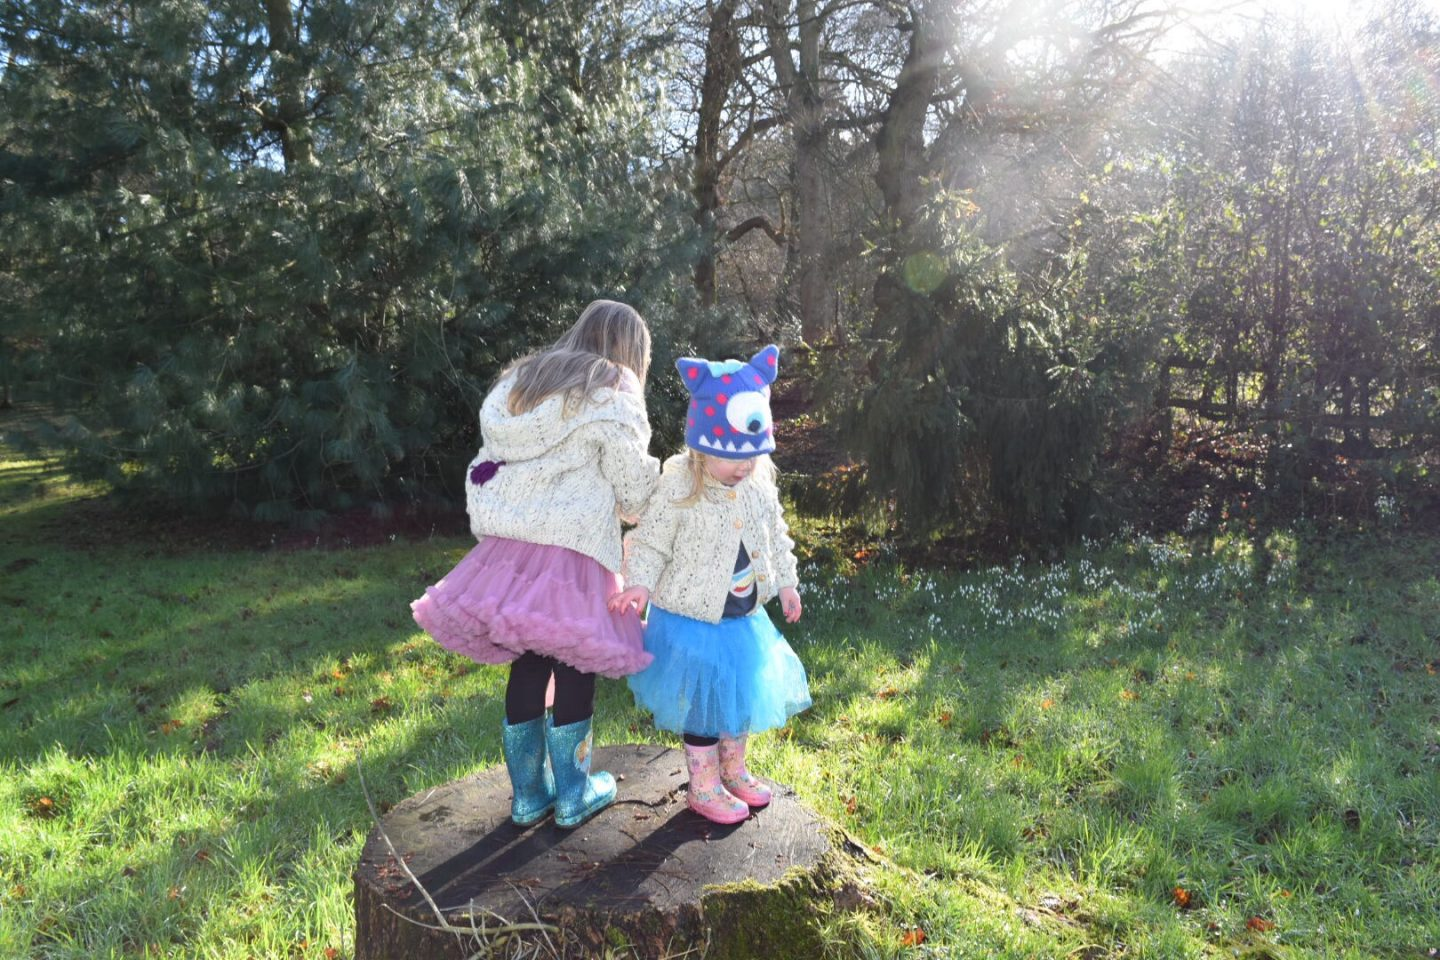 Half-term fun in Cheshire – Building dens, puddle jumping and snowdrop walks